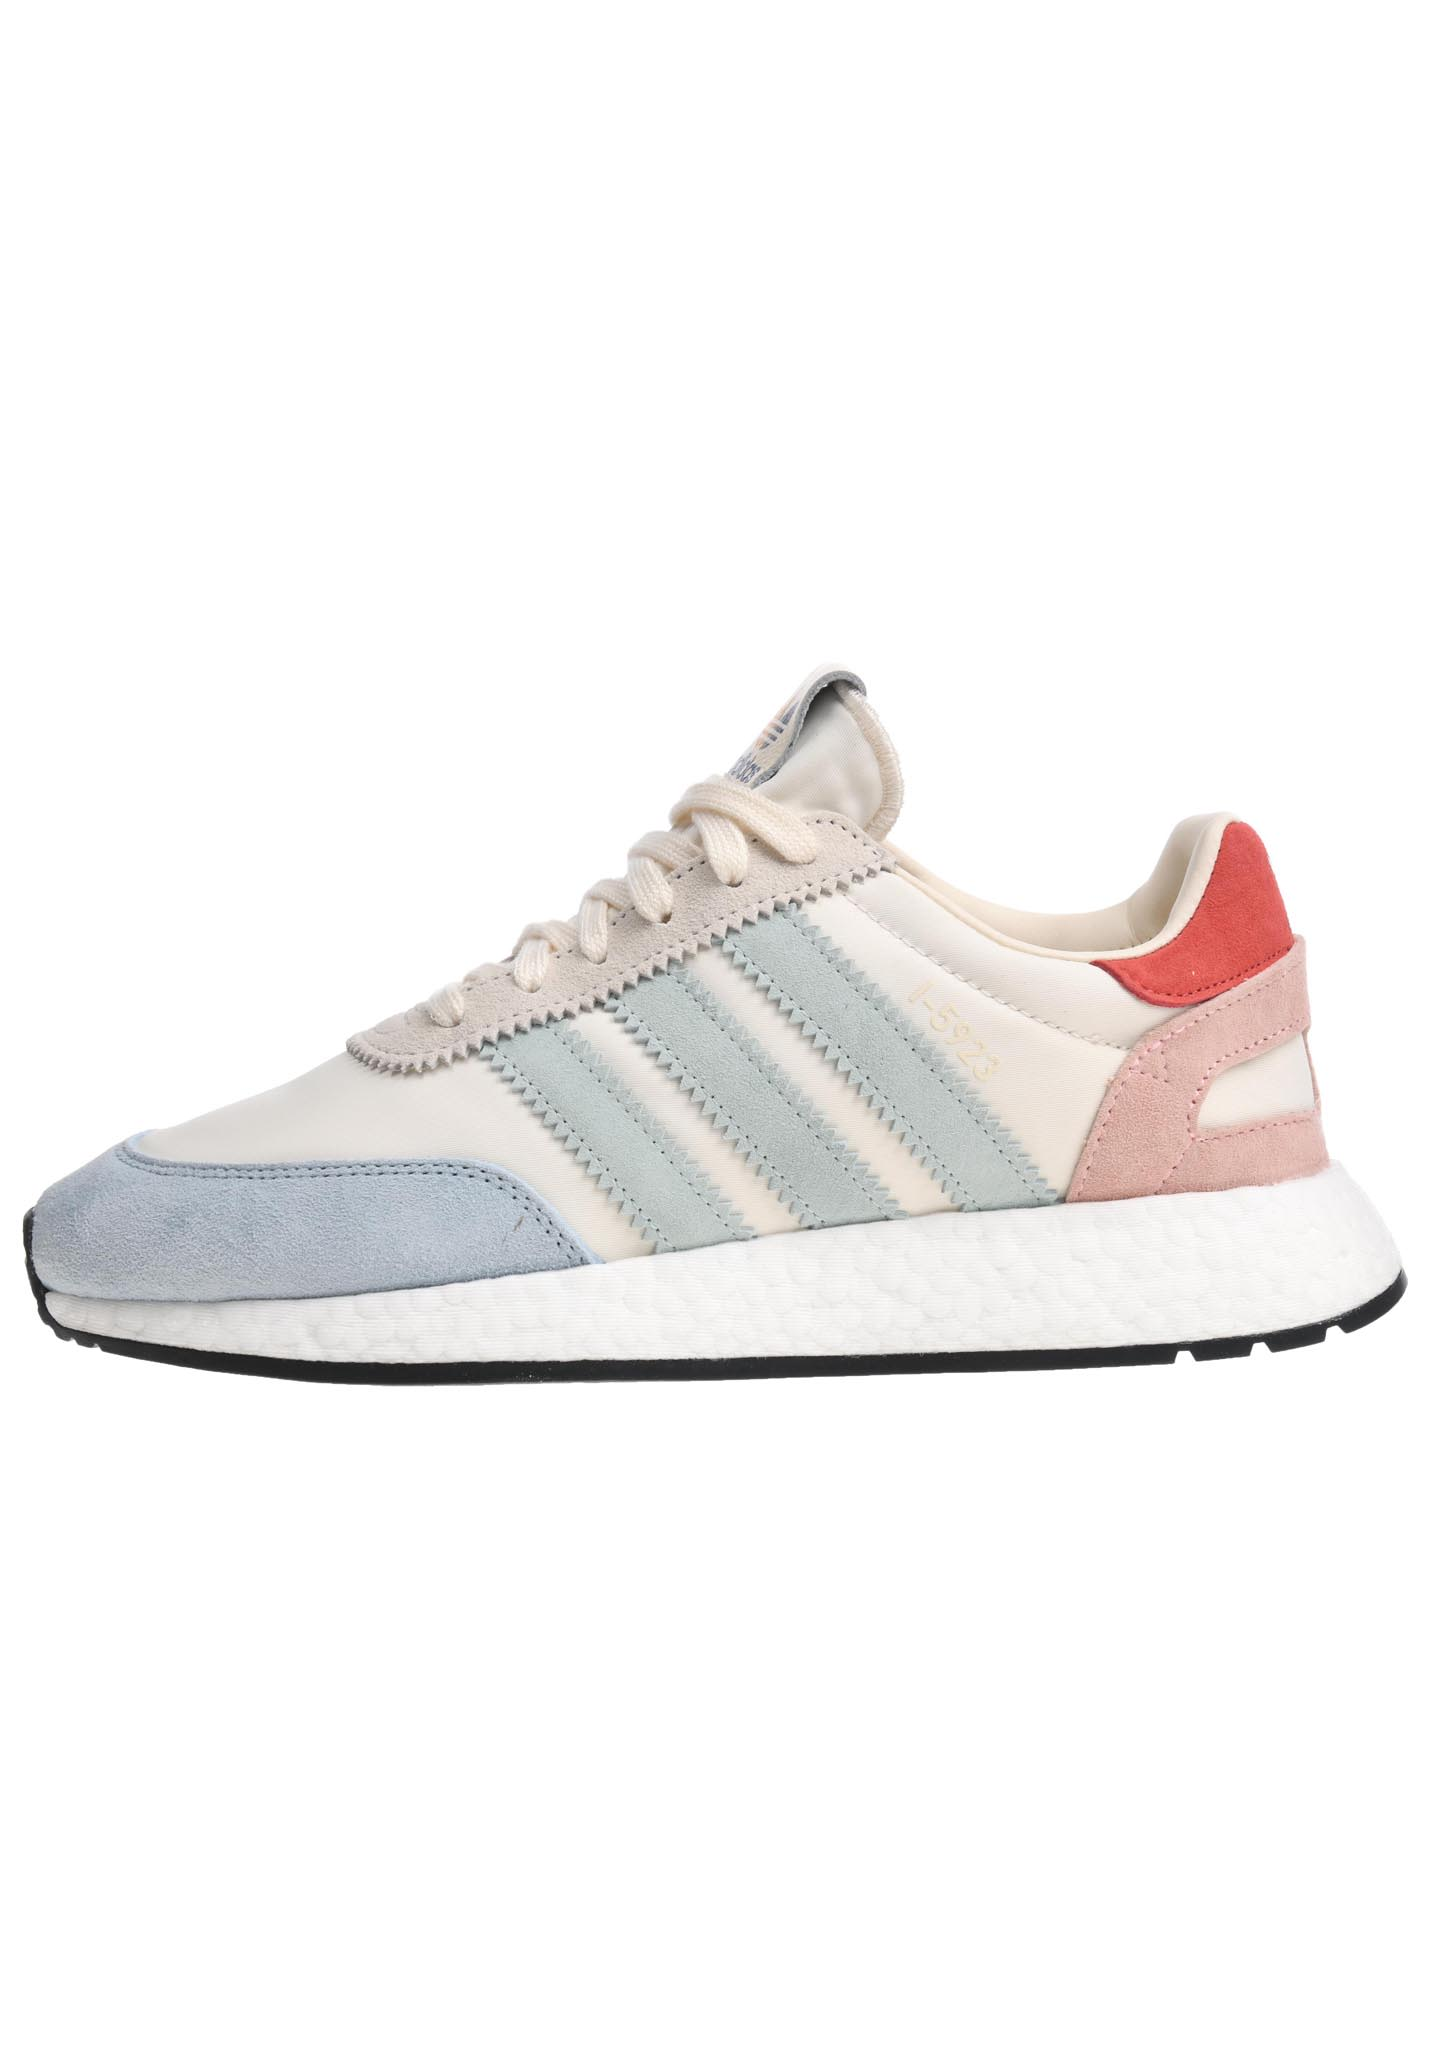 d5314dc5275 ADIDAS ORIGINALS I-5923 Pride - Sneakers voor Heren - Beige - Planet Sports